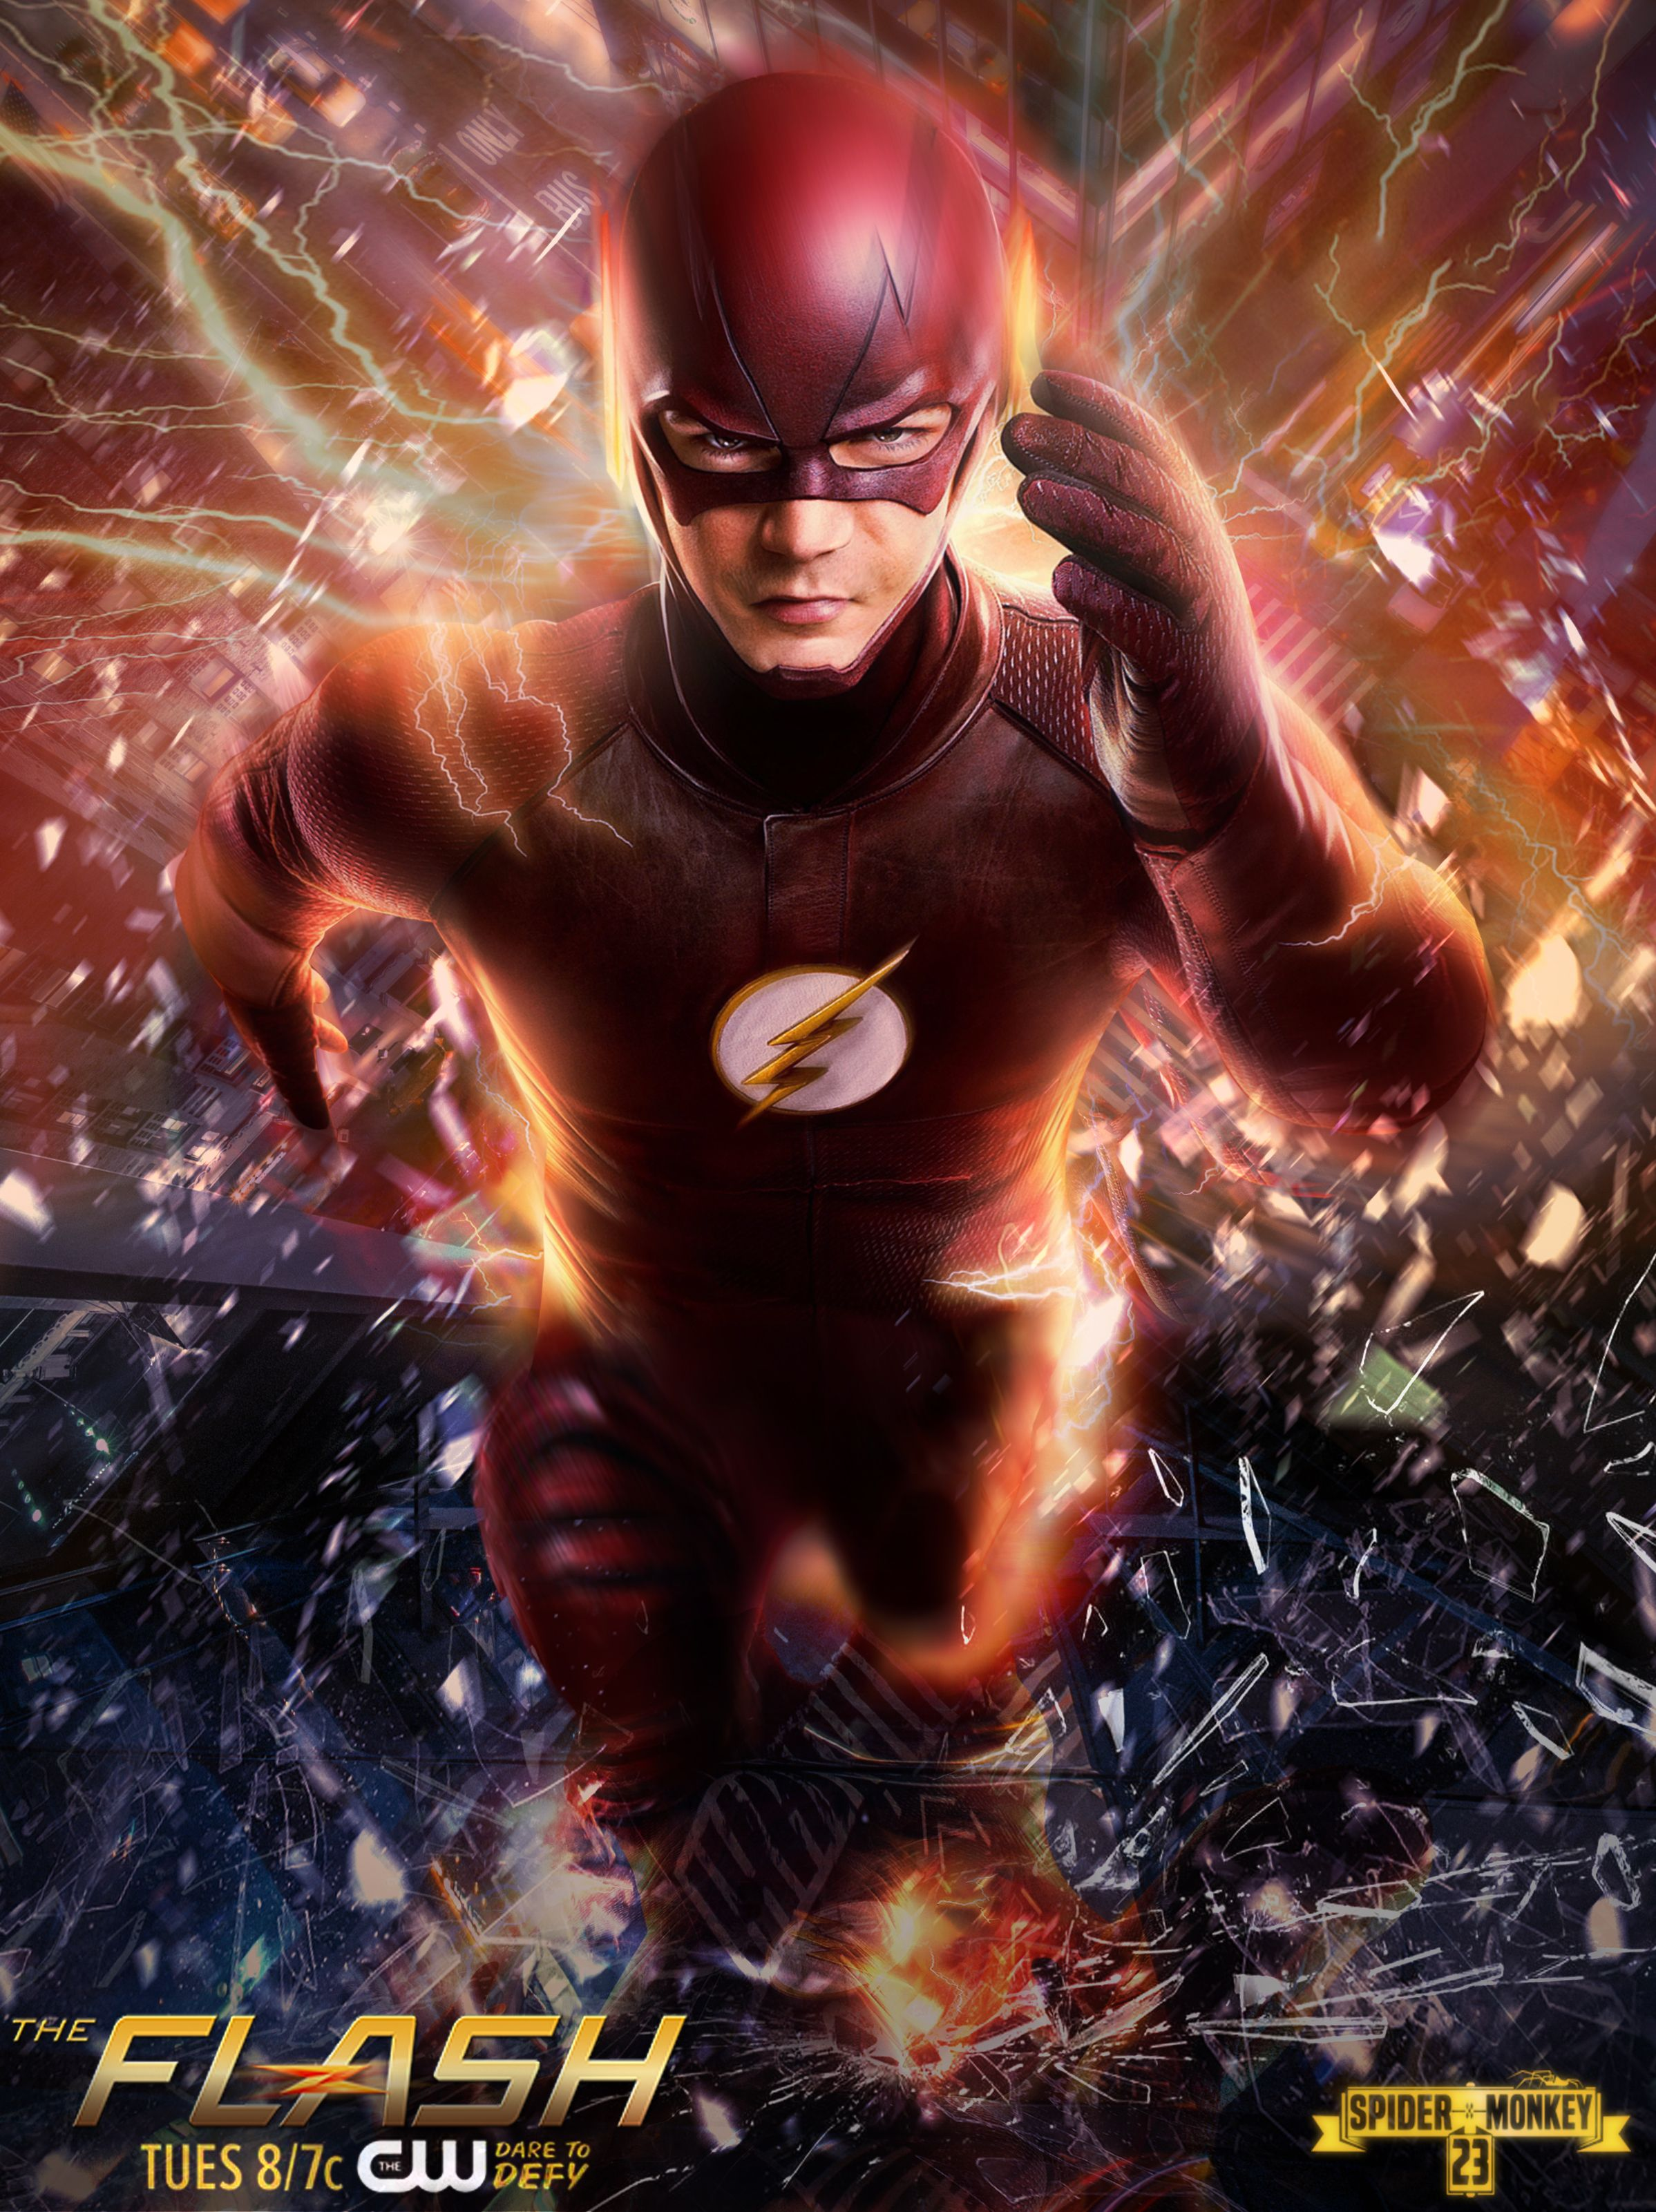 The Flash S04E03 – Luck Be a Lady, serial online subtitrat în Română